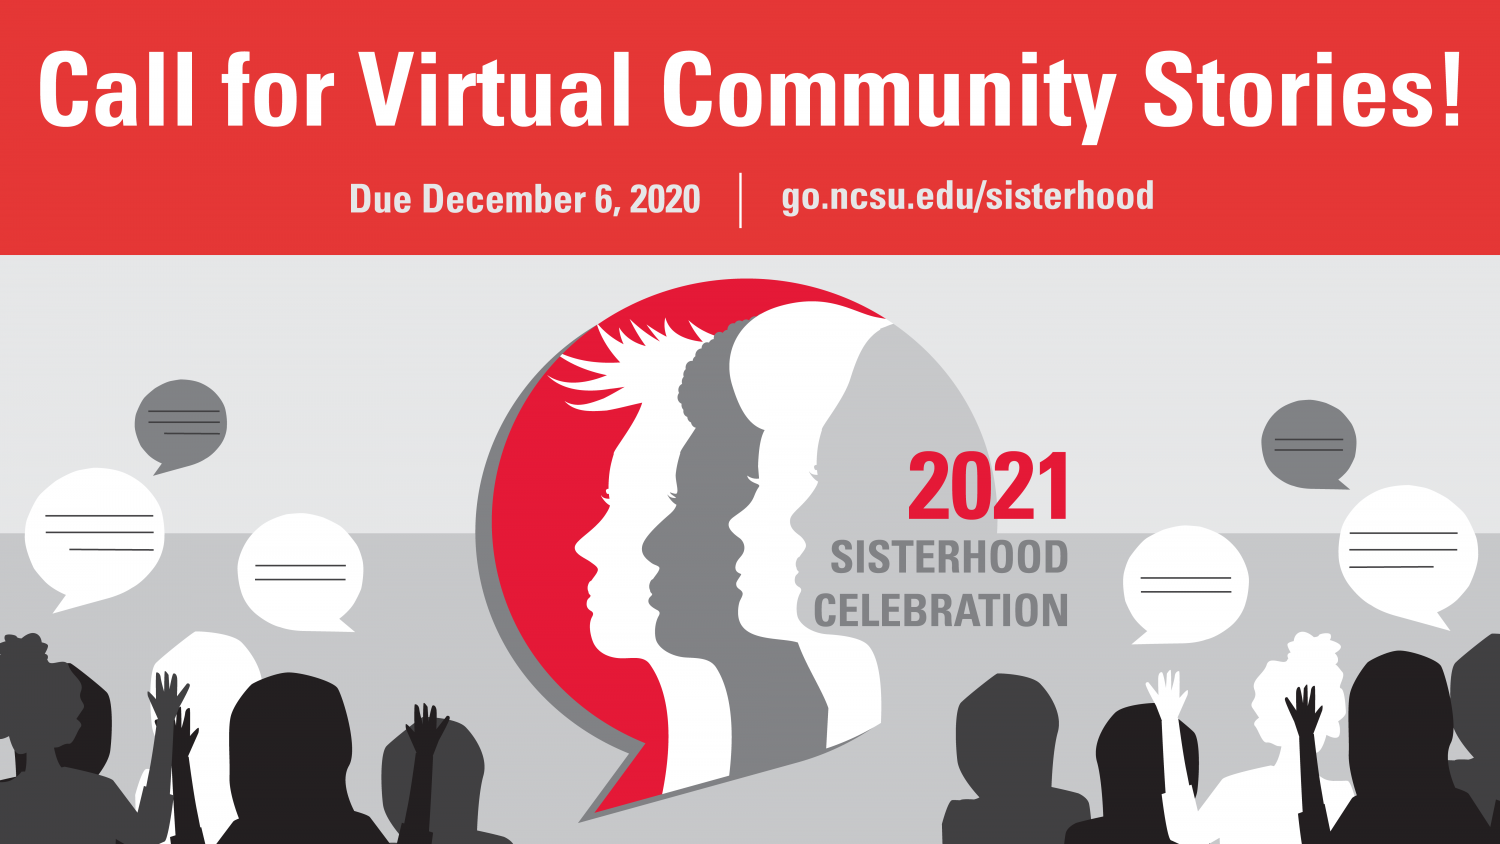 Call for Virtual Community Stories